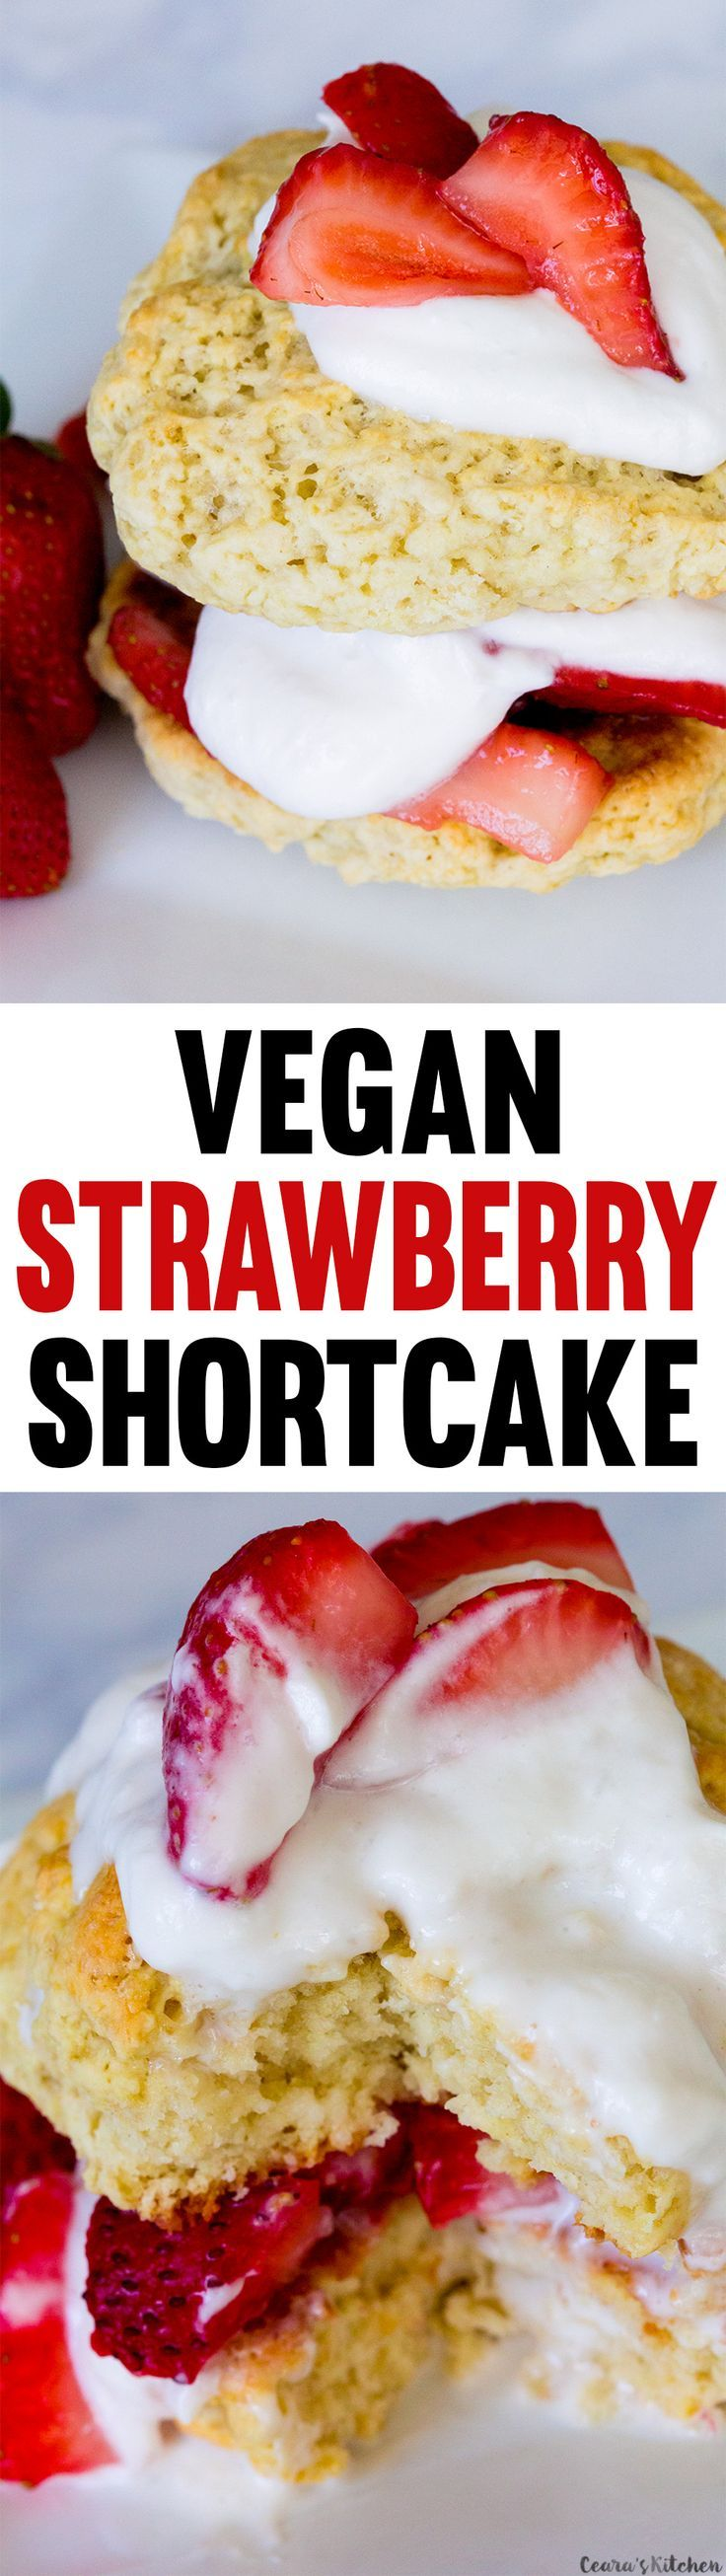 Vegan Strawberry Shortcake Produce  1 lb Strawberries    Canned Goods  1 Coconut cream  1 cup Coconut milk, full fat and cold    Condiments  2 tbsp Lemon juice     Baking & Spices  2 cups All-purpose flour, unbleached  3 tsp Baking powder  1/2 cup Cane sugar  1/2 tsp Sea salt  2 tbsp Sugar  1/2 tsp Vanilla extract  #fast, easy, affordable, cheap, vegetarian, vegan, gluten-free, make substitutions delicious